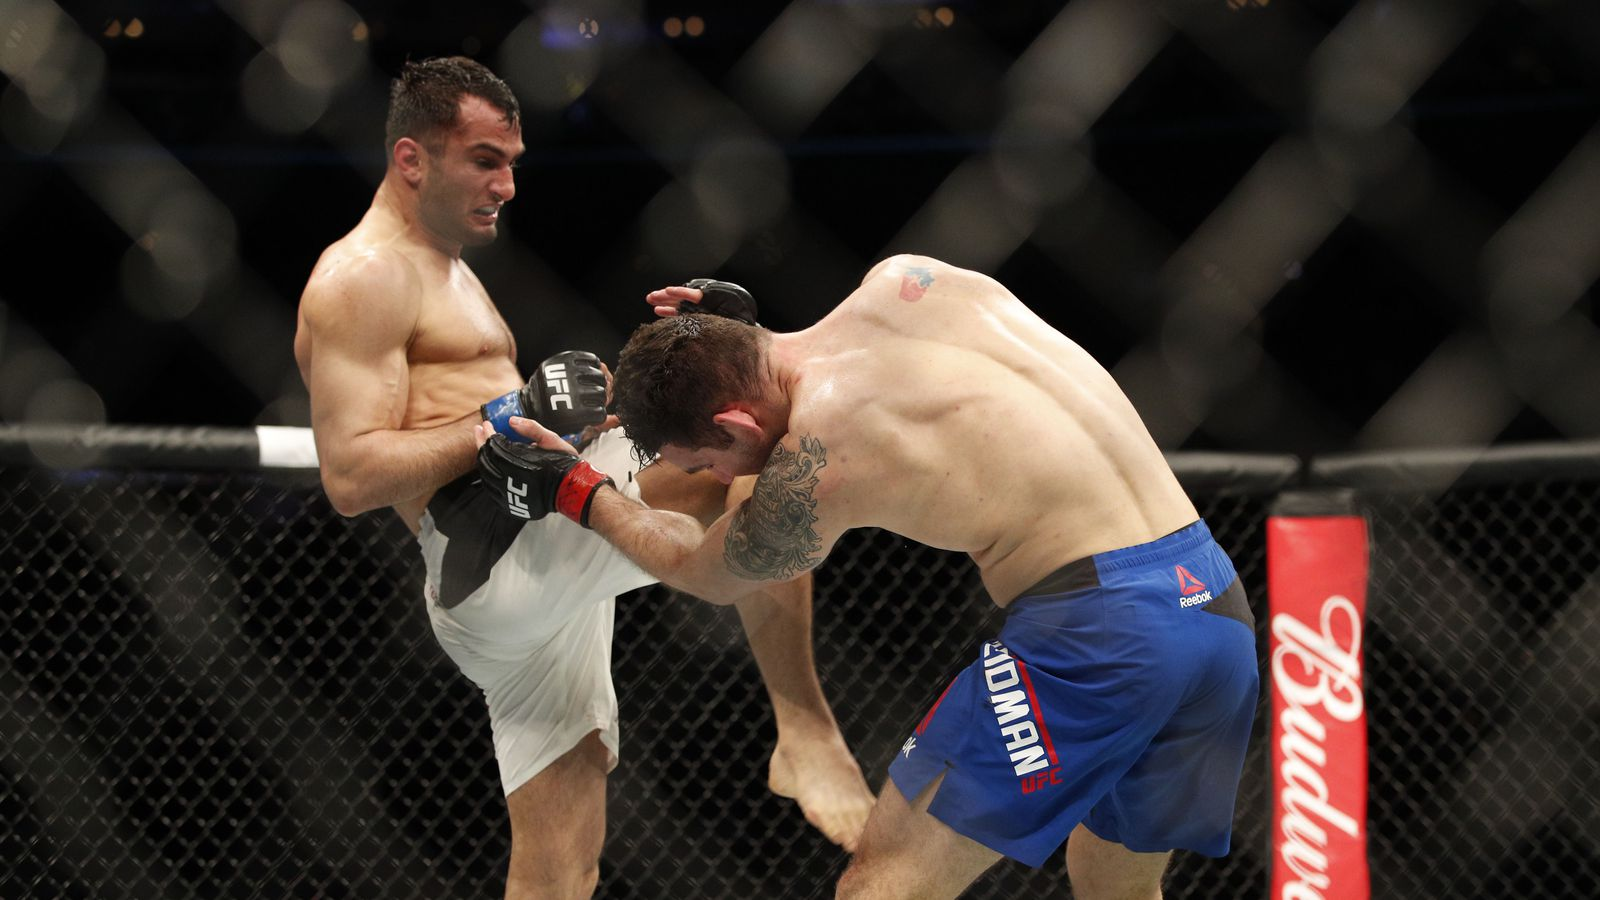 Ufc 210 results from last night chris weidman vs gegard mousasi ufc 210 results from last night chris weidman vs gegard mousasi fight recap mmamania malvernweather Gallery